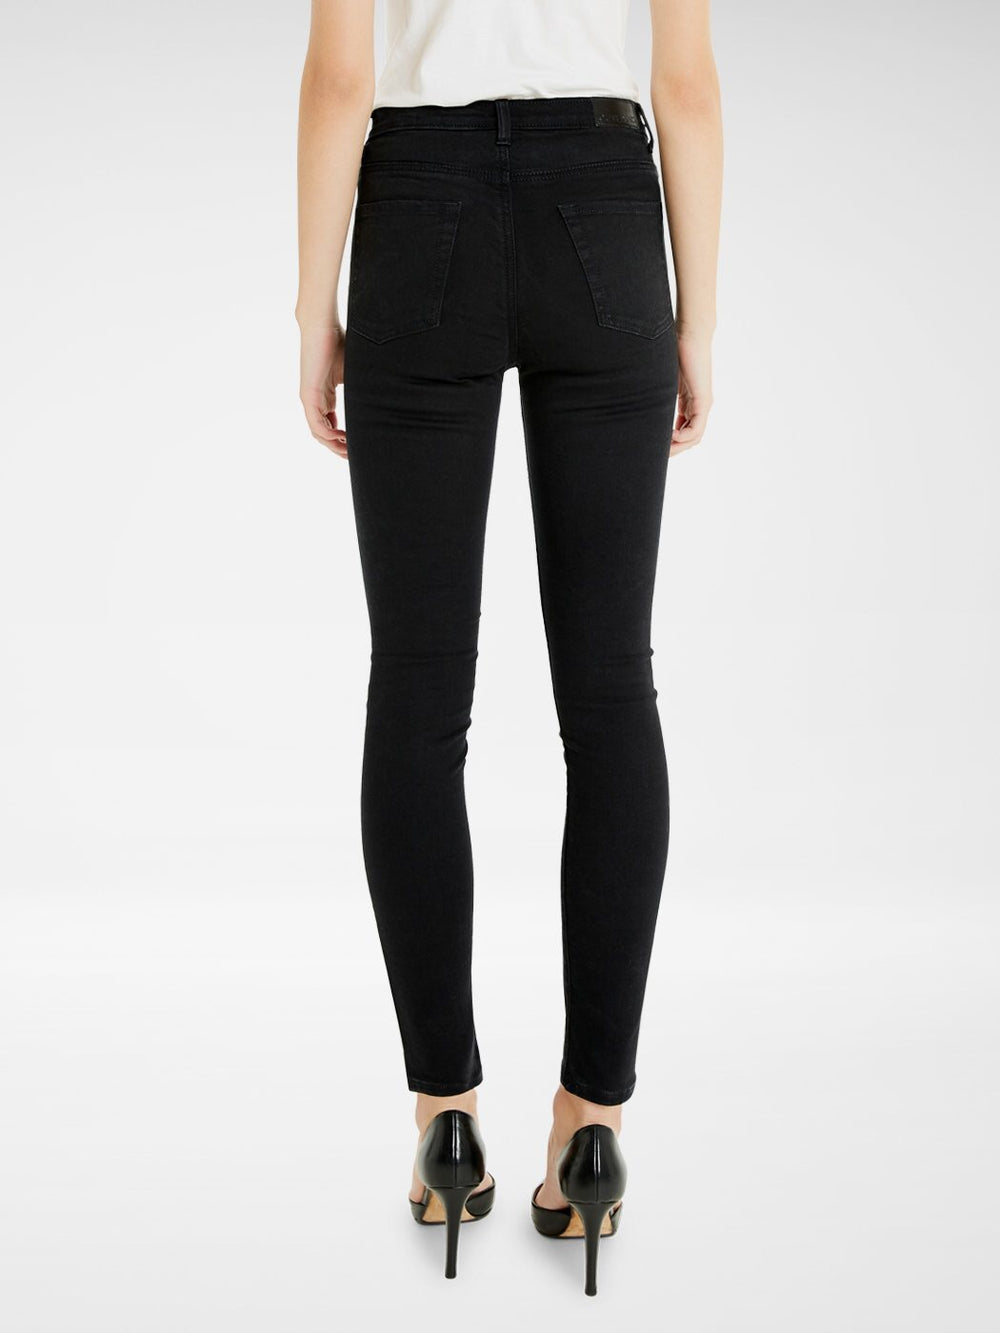 Back view of the Outland Denim Harriet Jean in Black Ankle Length